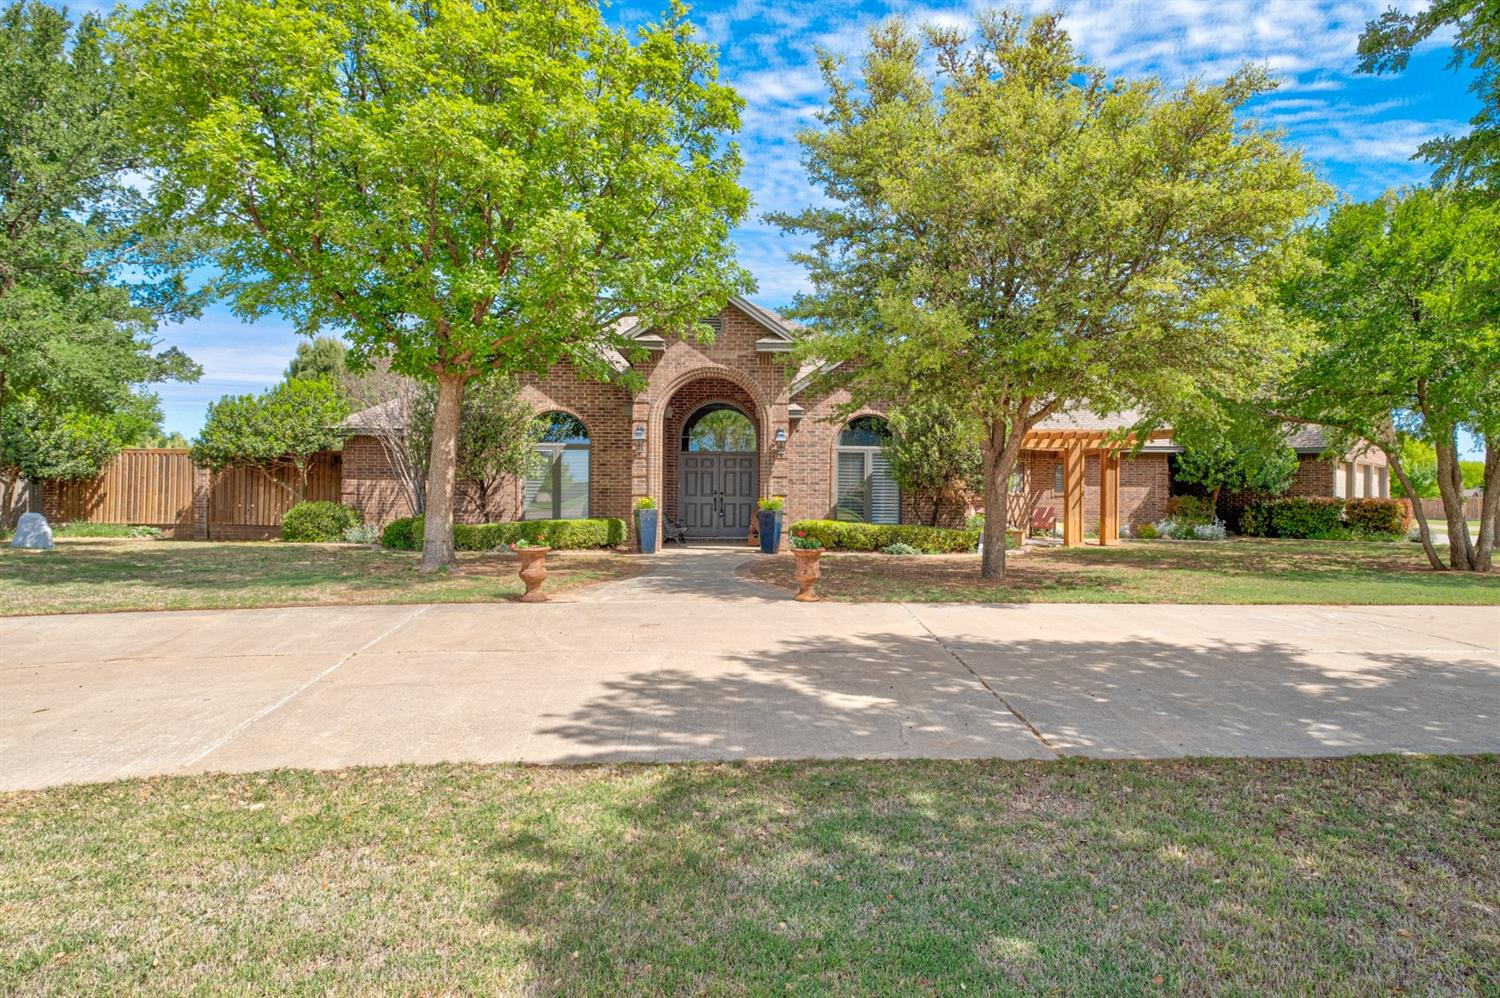 This 4/3/3 Kemper Estates Beauty on 1 Acre has ALL the bells and whistles! Impressive details are everywhere ~ Large open family spaces, Tall vaulted ceilings, THREE stone fireplaces, +++! HUGE Master bedroom Suite with doors to back patio. Master bath has separate vanities, large shower & airflow tub, PLUS a closet as big as a bedroom! Bedrooms #2 & #3 have a Jack and Jill bath in between. The 4th bedroom has an entire wall of built-ins ~ could be a great office. Nice laundry room, Safe room, 2 dining rooms, and TONS of windows with an abundance of natural light. Landscaped with care, the front and back yards are amazing - The Large covered patio features an Outdoor kitchen, and the Hot tub/Spa & Inground pool will offer relaxation and FUN for all! 40x30 barn features an upstairs gameroom with 1/2 bath (BONUS square footage!) with deck overlooking the pool PLUS another shop is currently being used as a workout facility. THIS HOME HAS IT ALL!!  ** Brand New HVAC - Lifetime Warranty! **